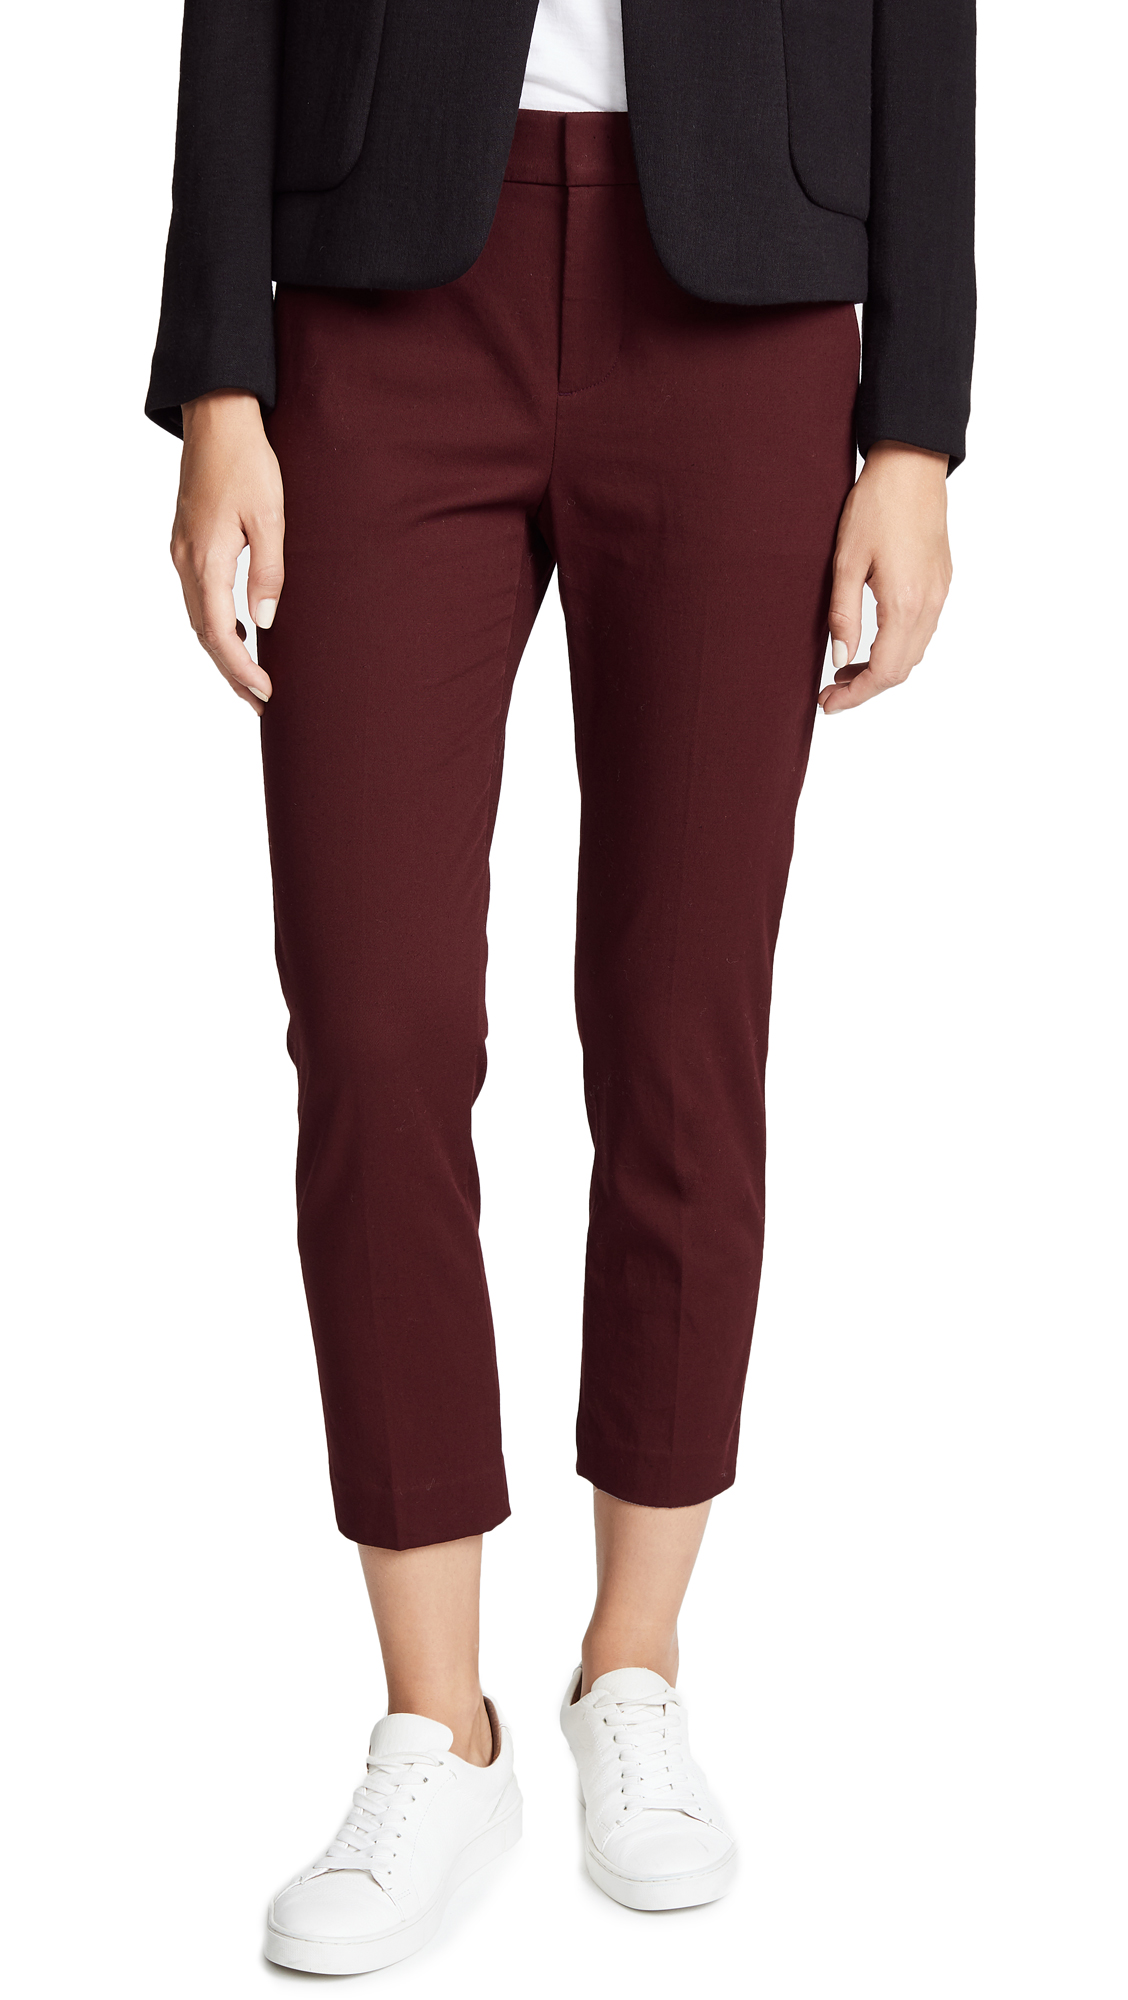 Coin Pocket Chino Pants, Black Cherry